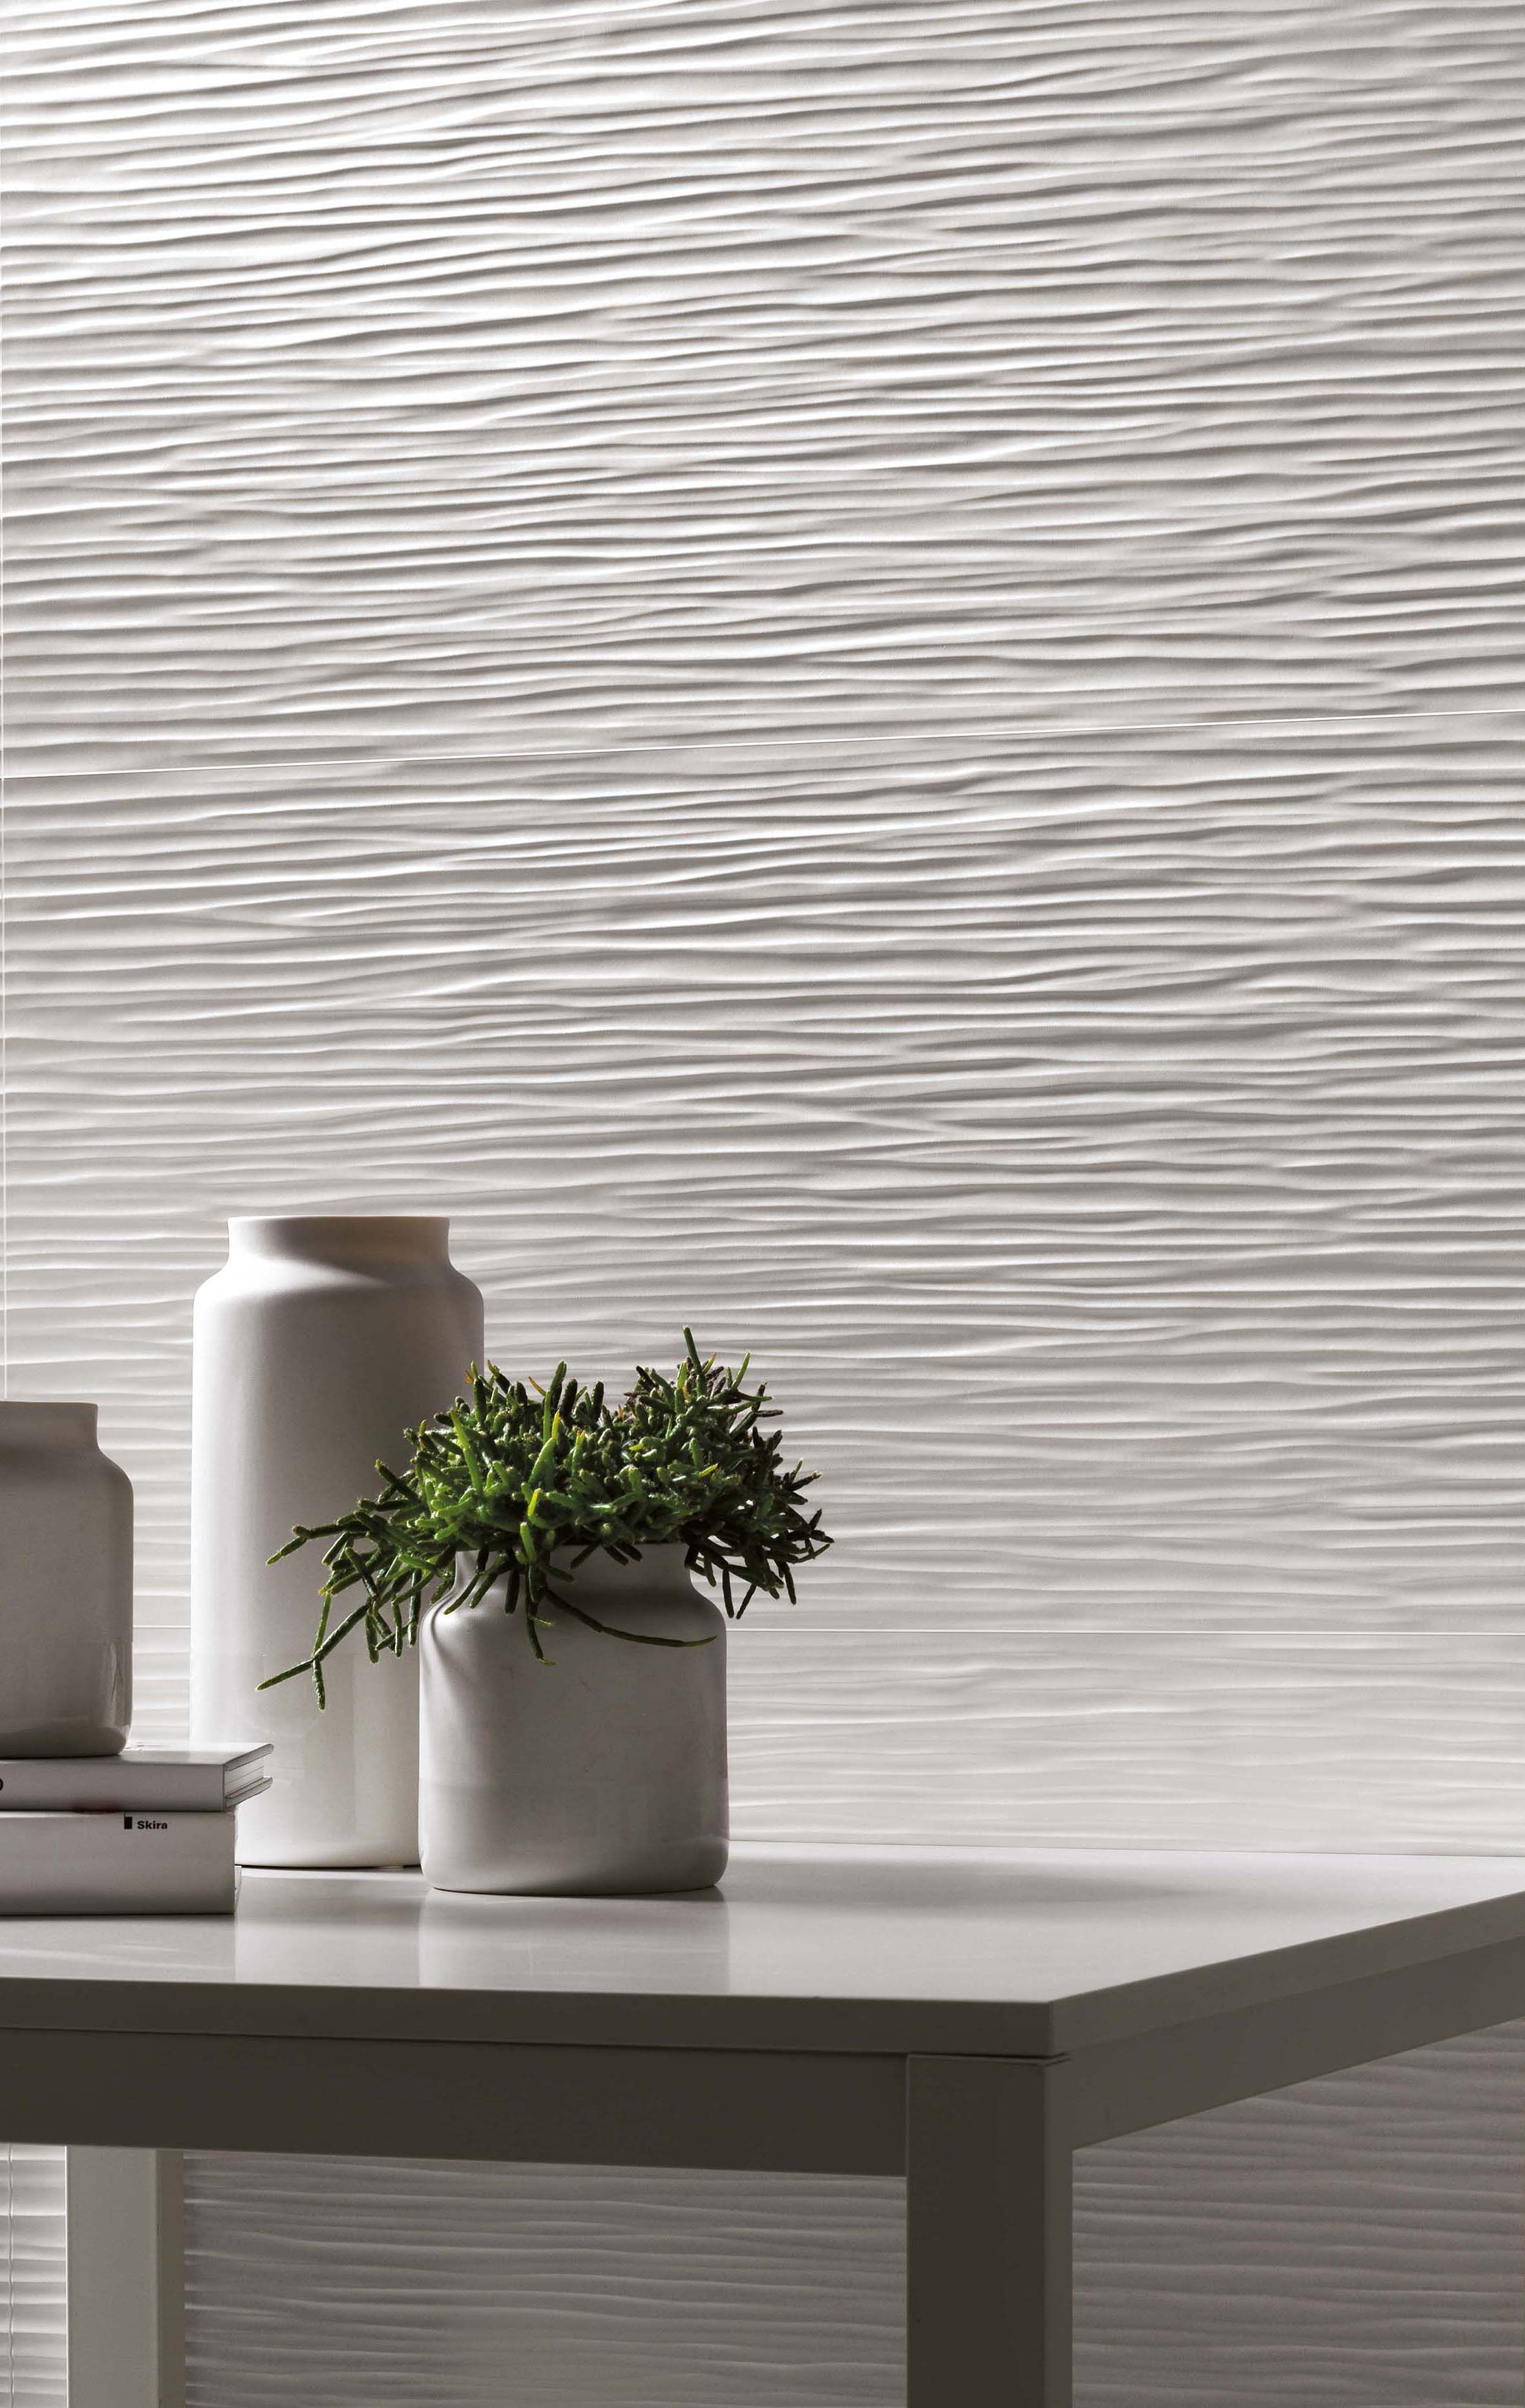 Wave Wall Design By Atlasconcorde Three Dimensional Ceramic Tiles Made In Italy